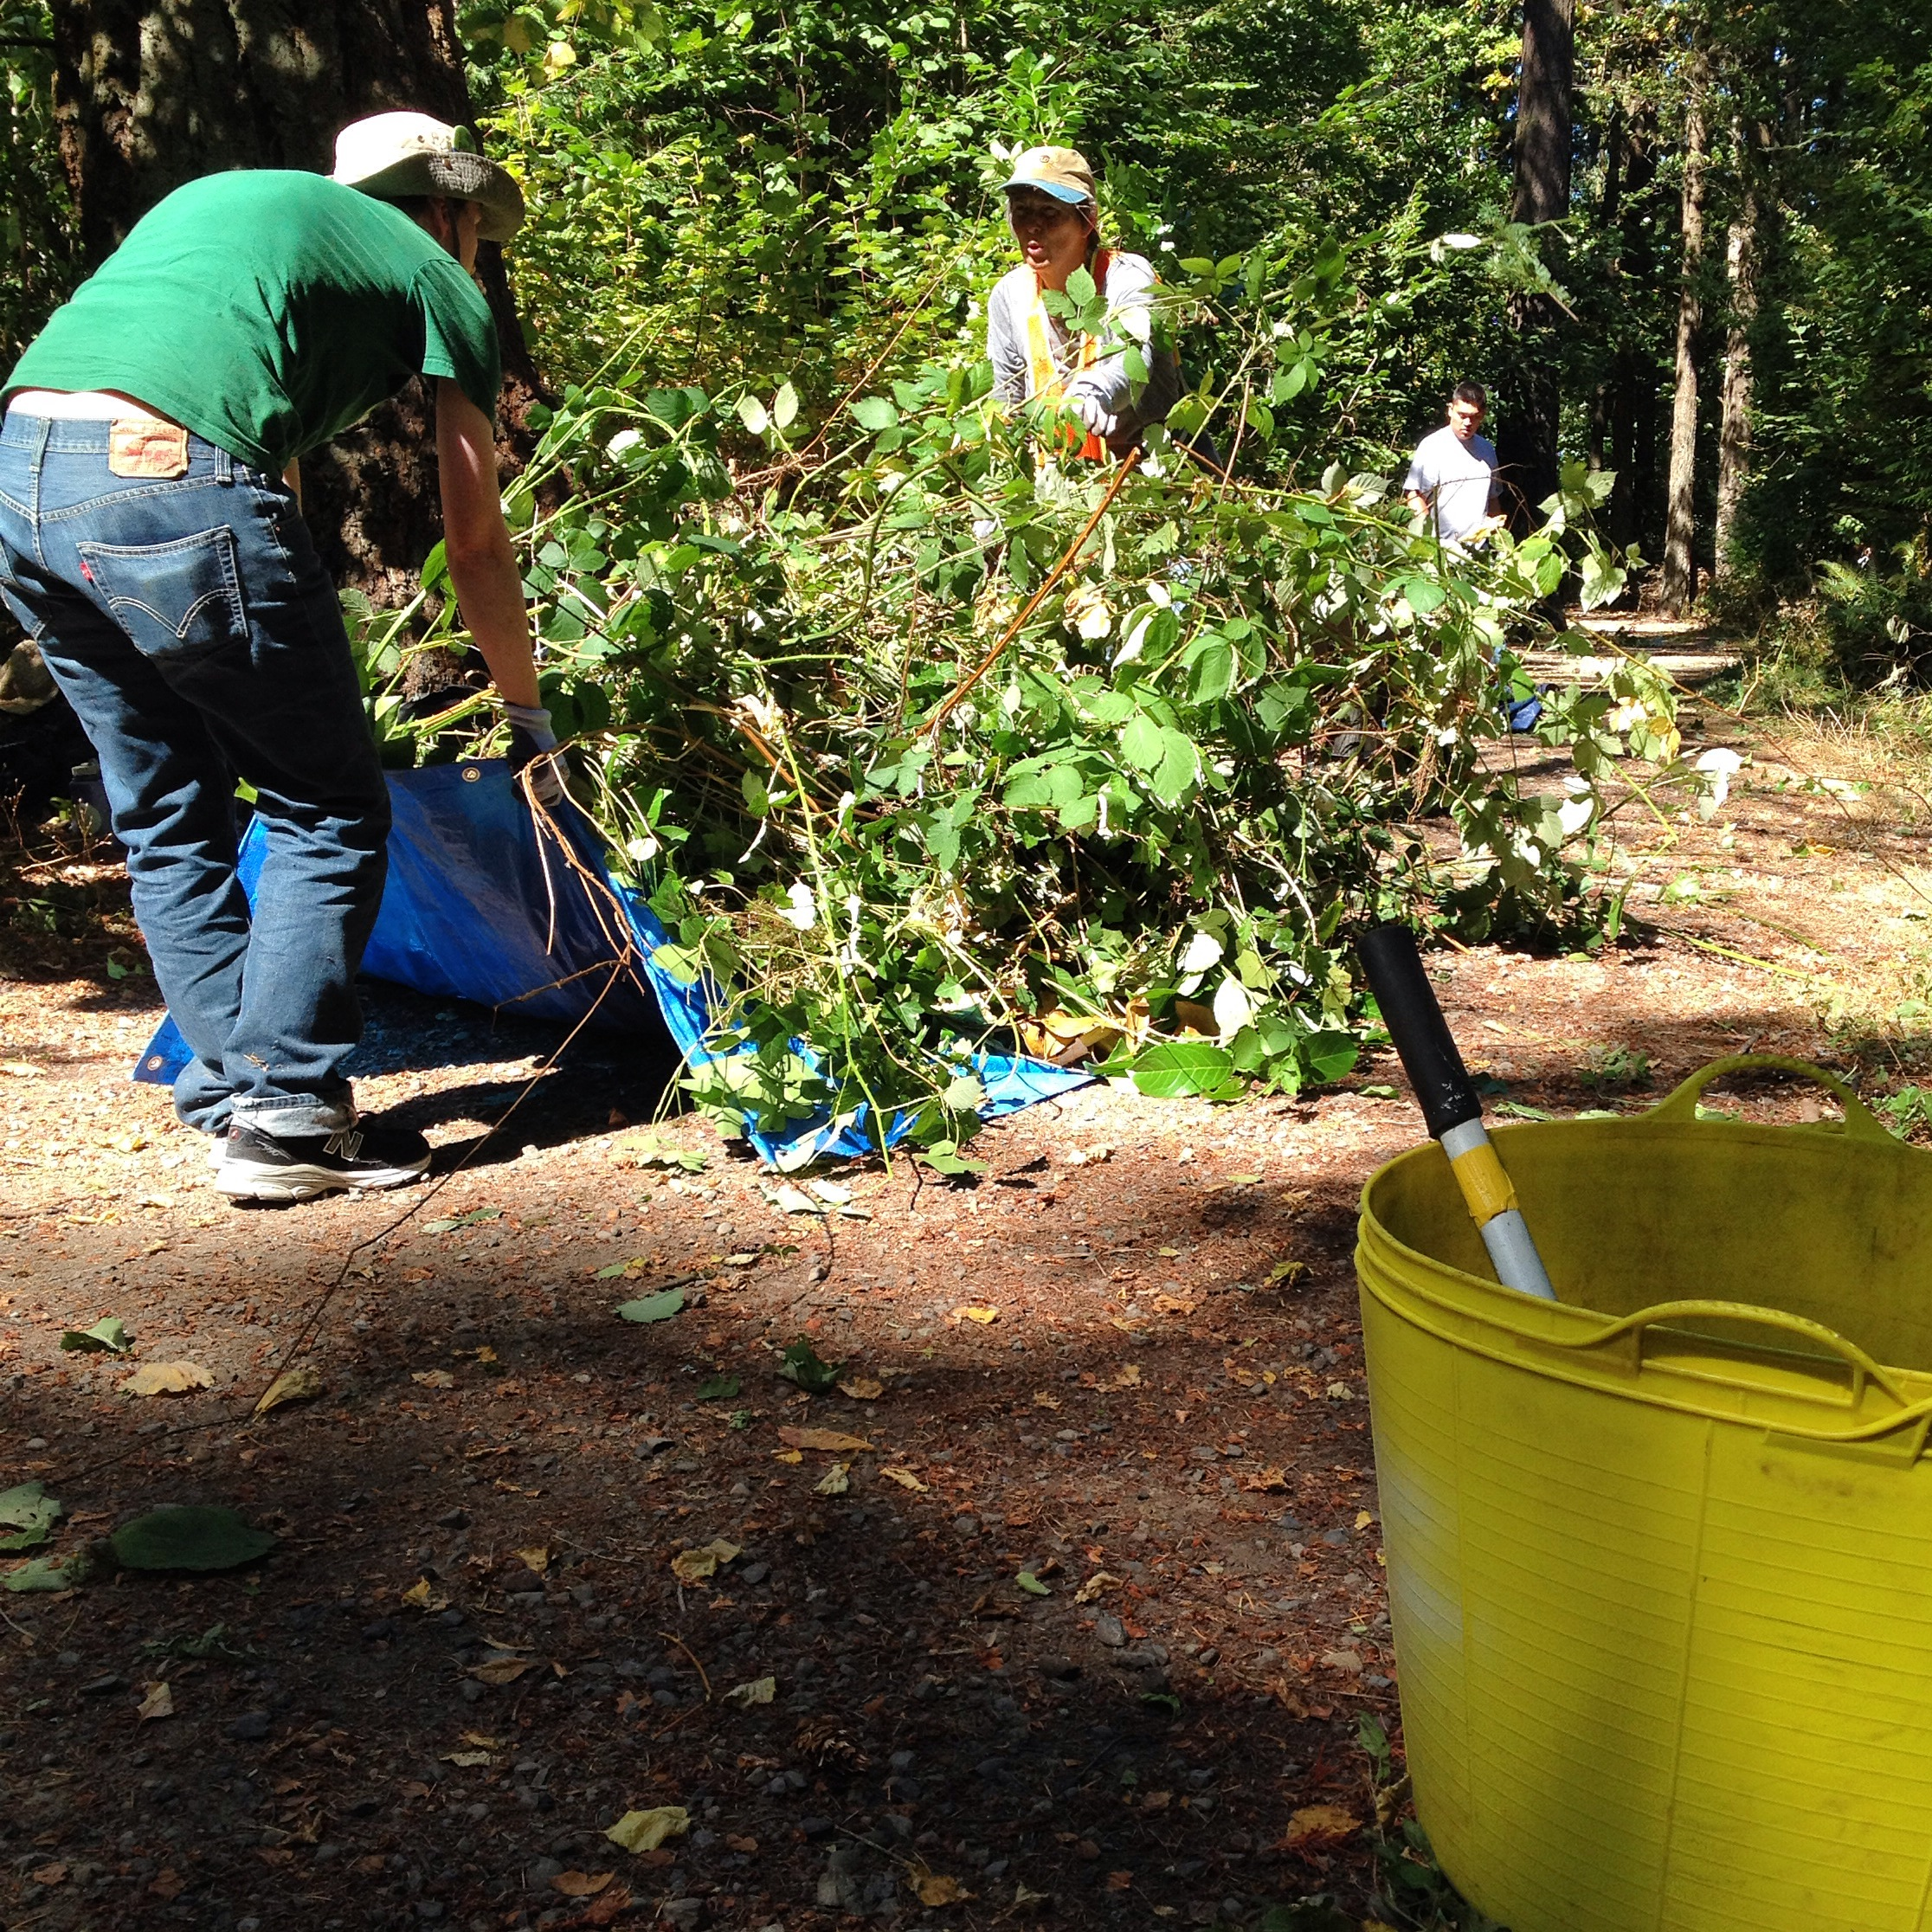 Removing invasive species at Nadaka Nature Park